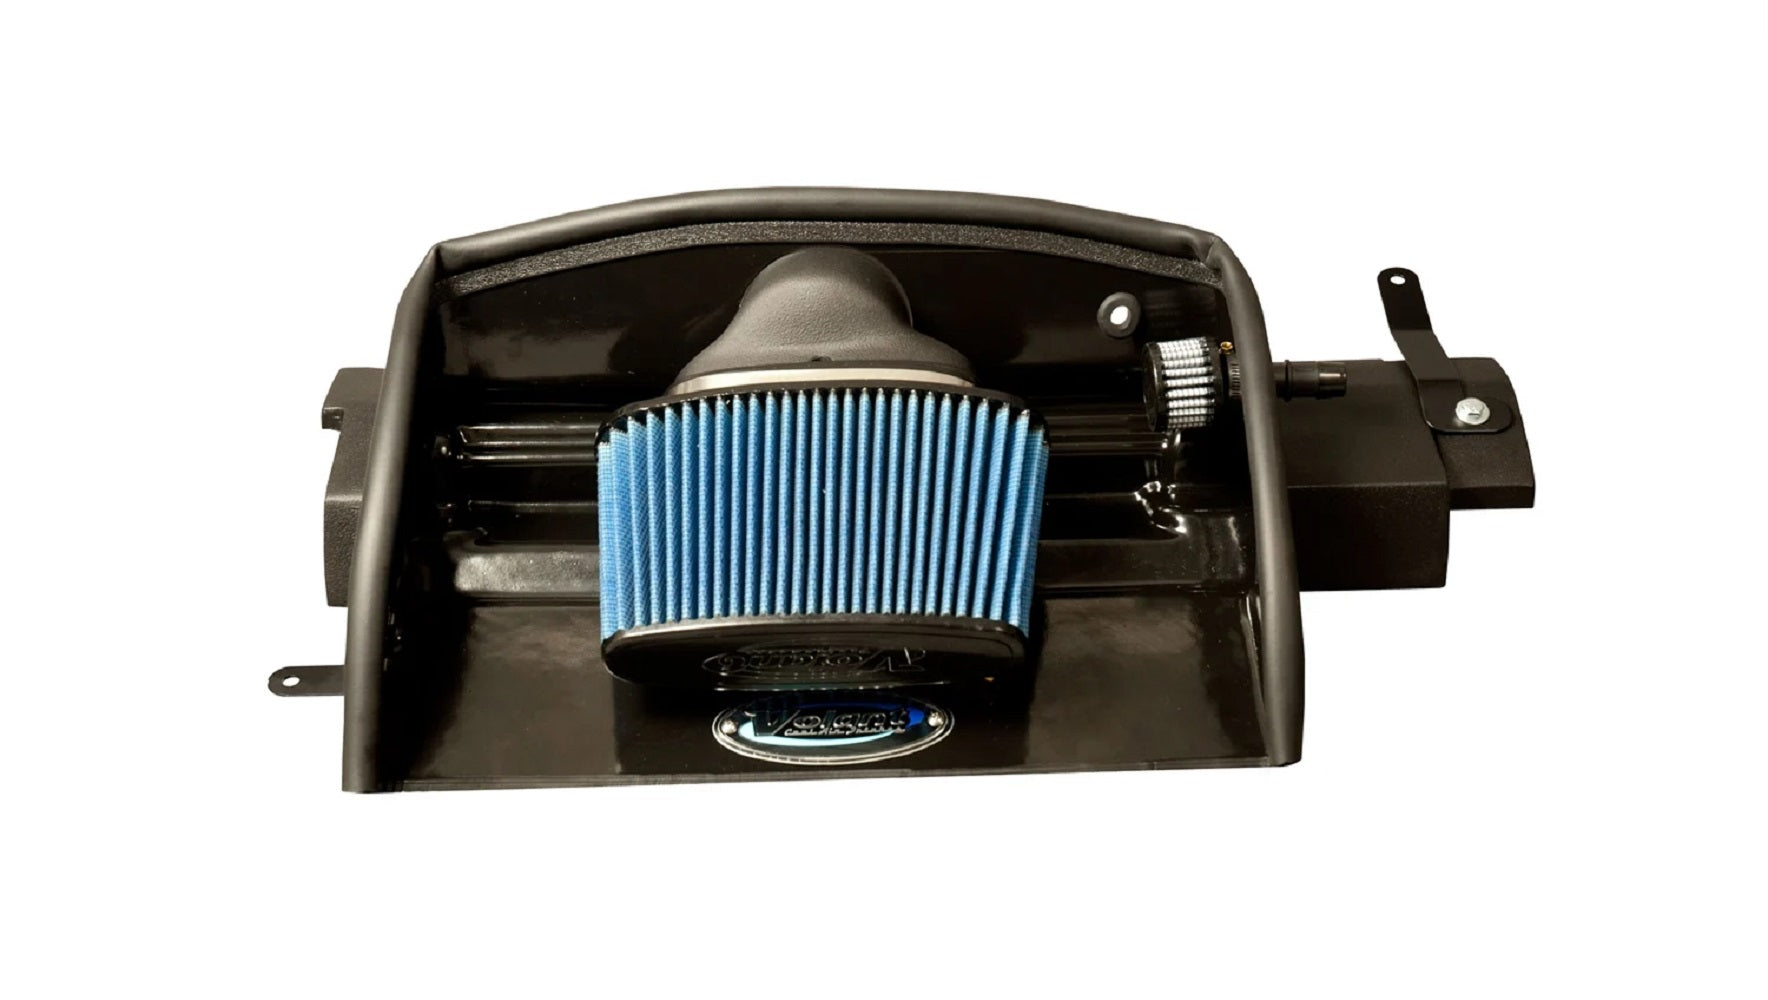 Volant 1998-2002 Chevrolet Camaro SS Camaro Z28 5.7L V8 Maxflow 5 Oiled Filter Open Element Air Intake 15958C